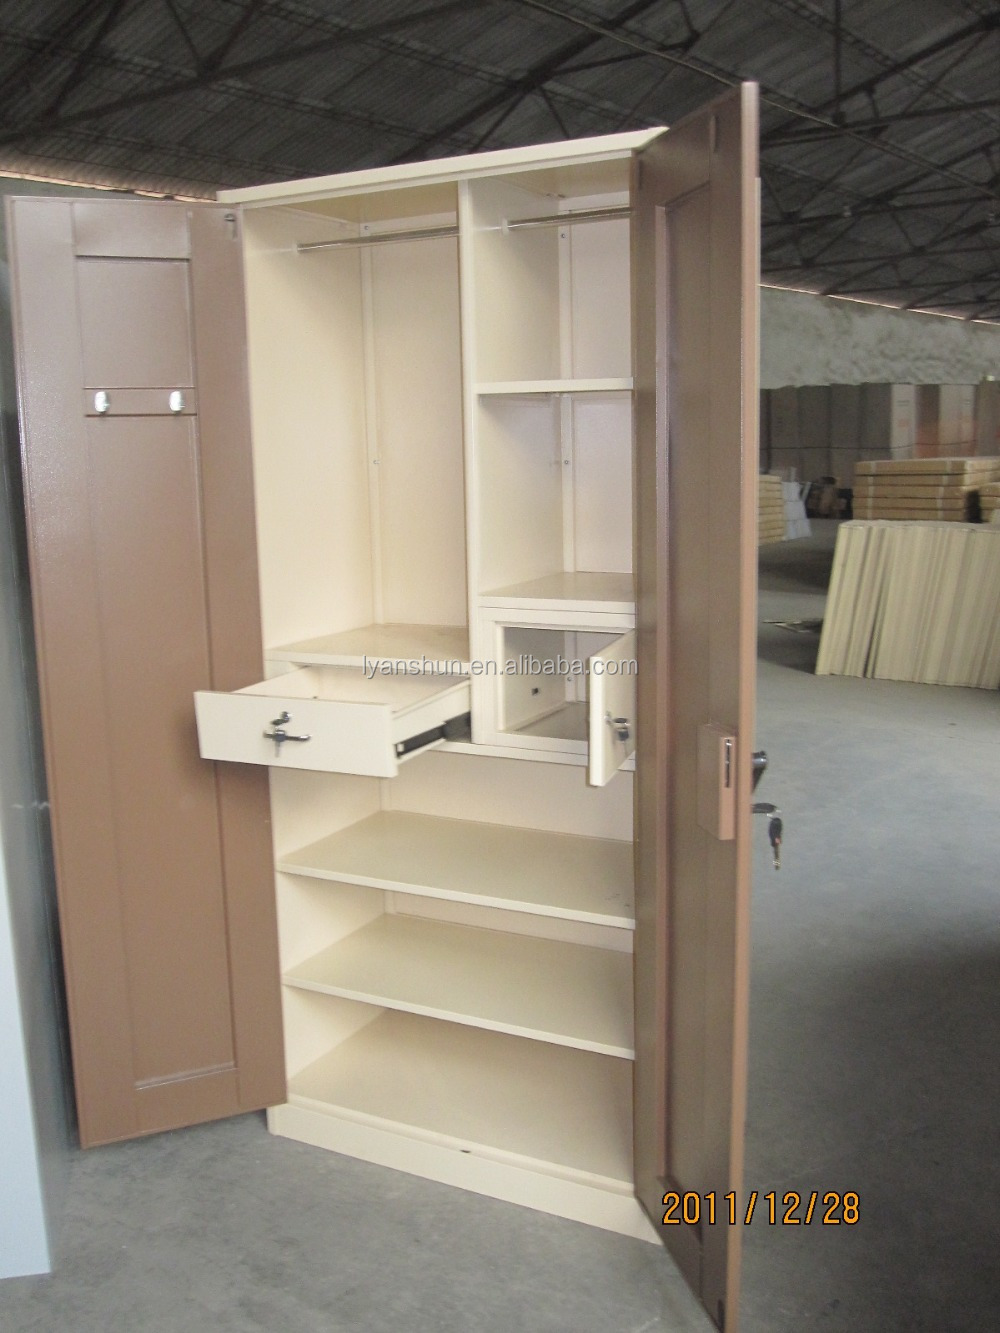 Cabinet Design For Clothes 2015 Wholesale Modern New Design Wardrobe Cabinet  Clothes Locker